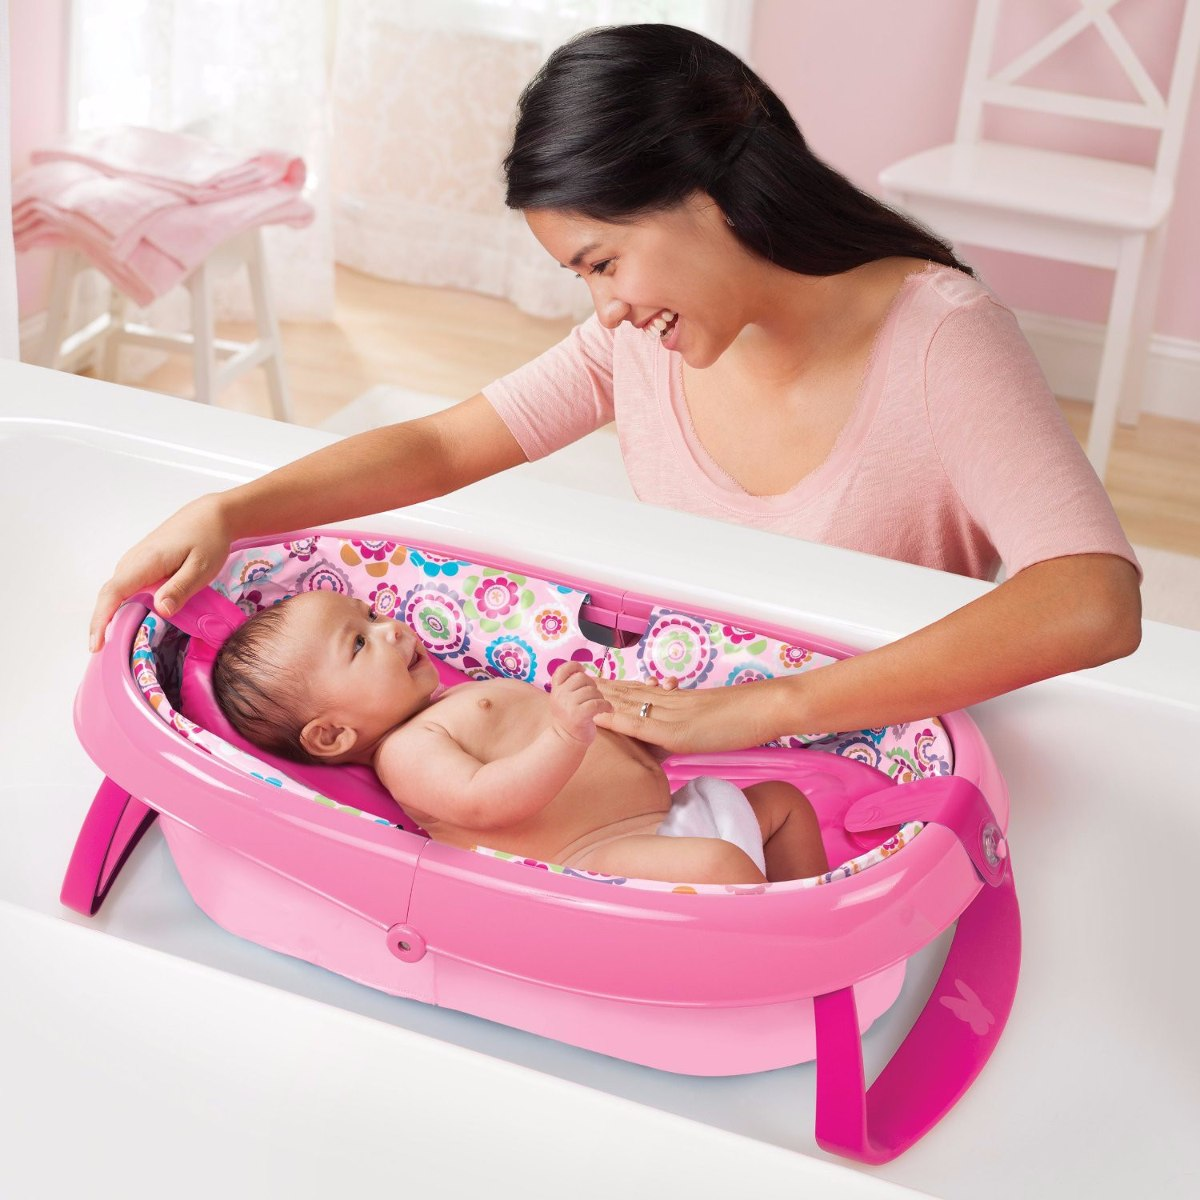 Baera Portatil Plegable Bebe Summer Infant Nia 2 In 1   139900 en Mercado Libre